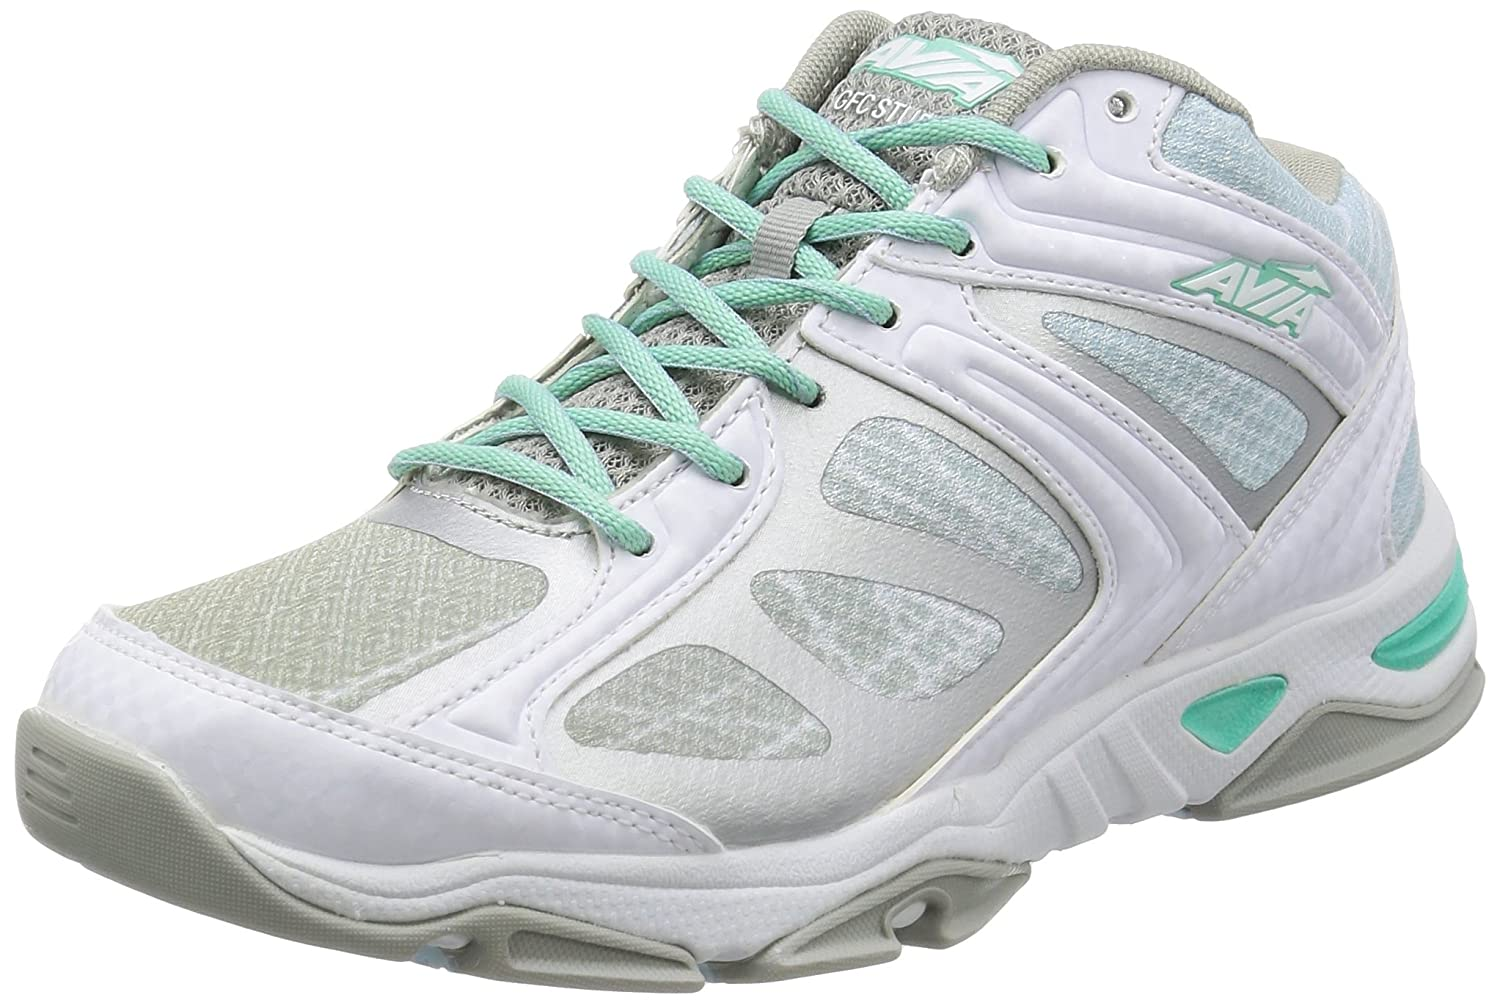 Avia Women's Gfc Studio Cross-Trainer Shoe B01A85ZK38 8.5 B(M) US|White/Silver/Lt Blue